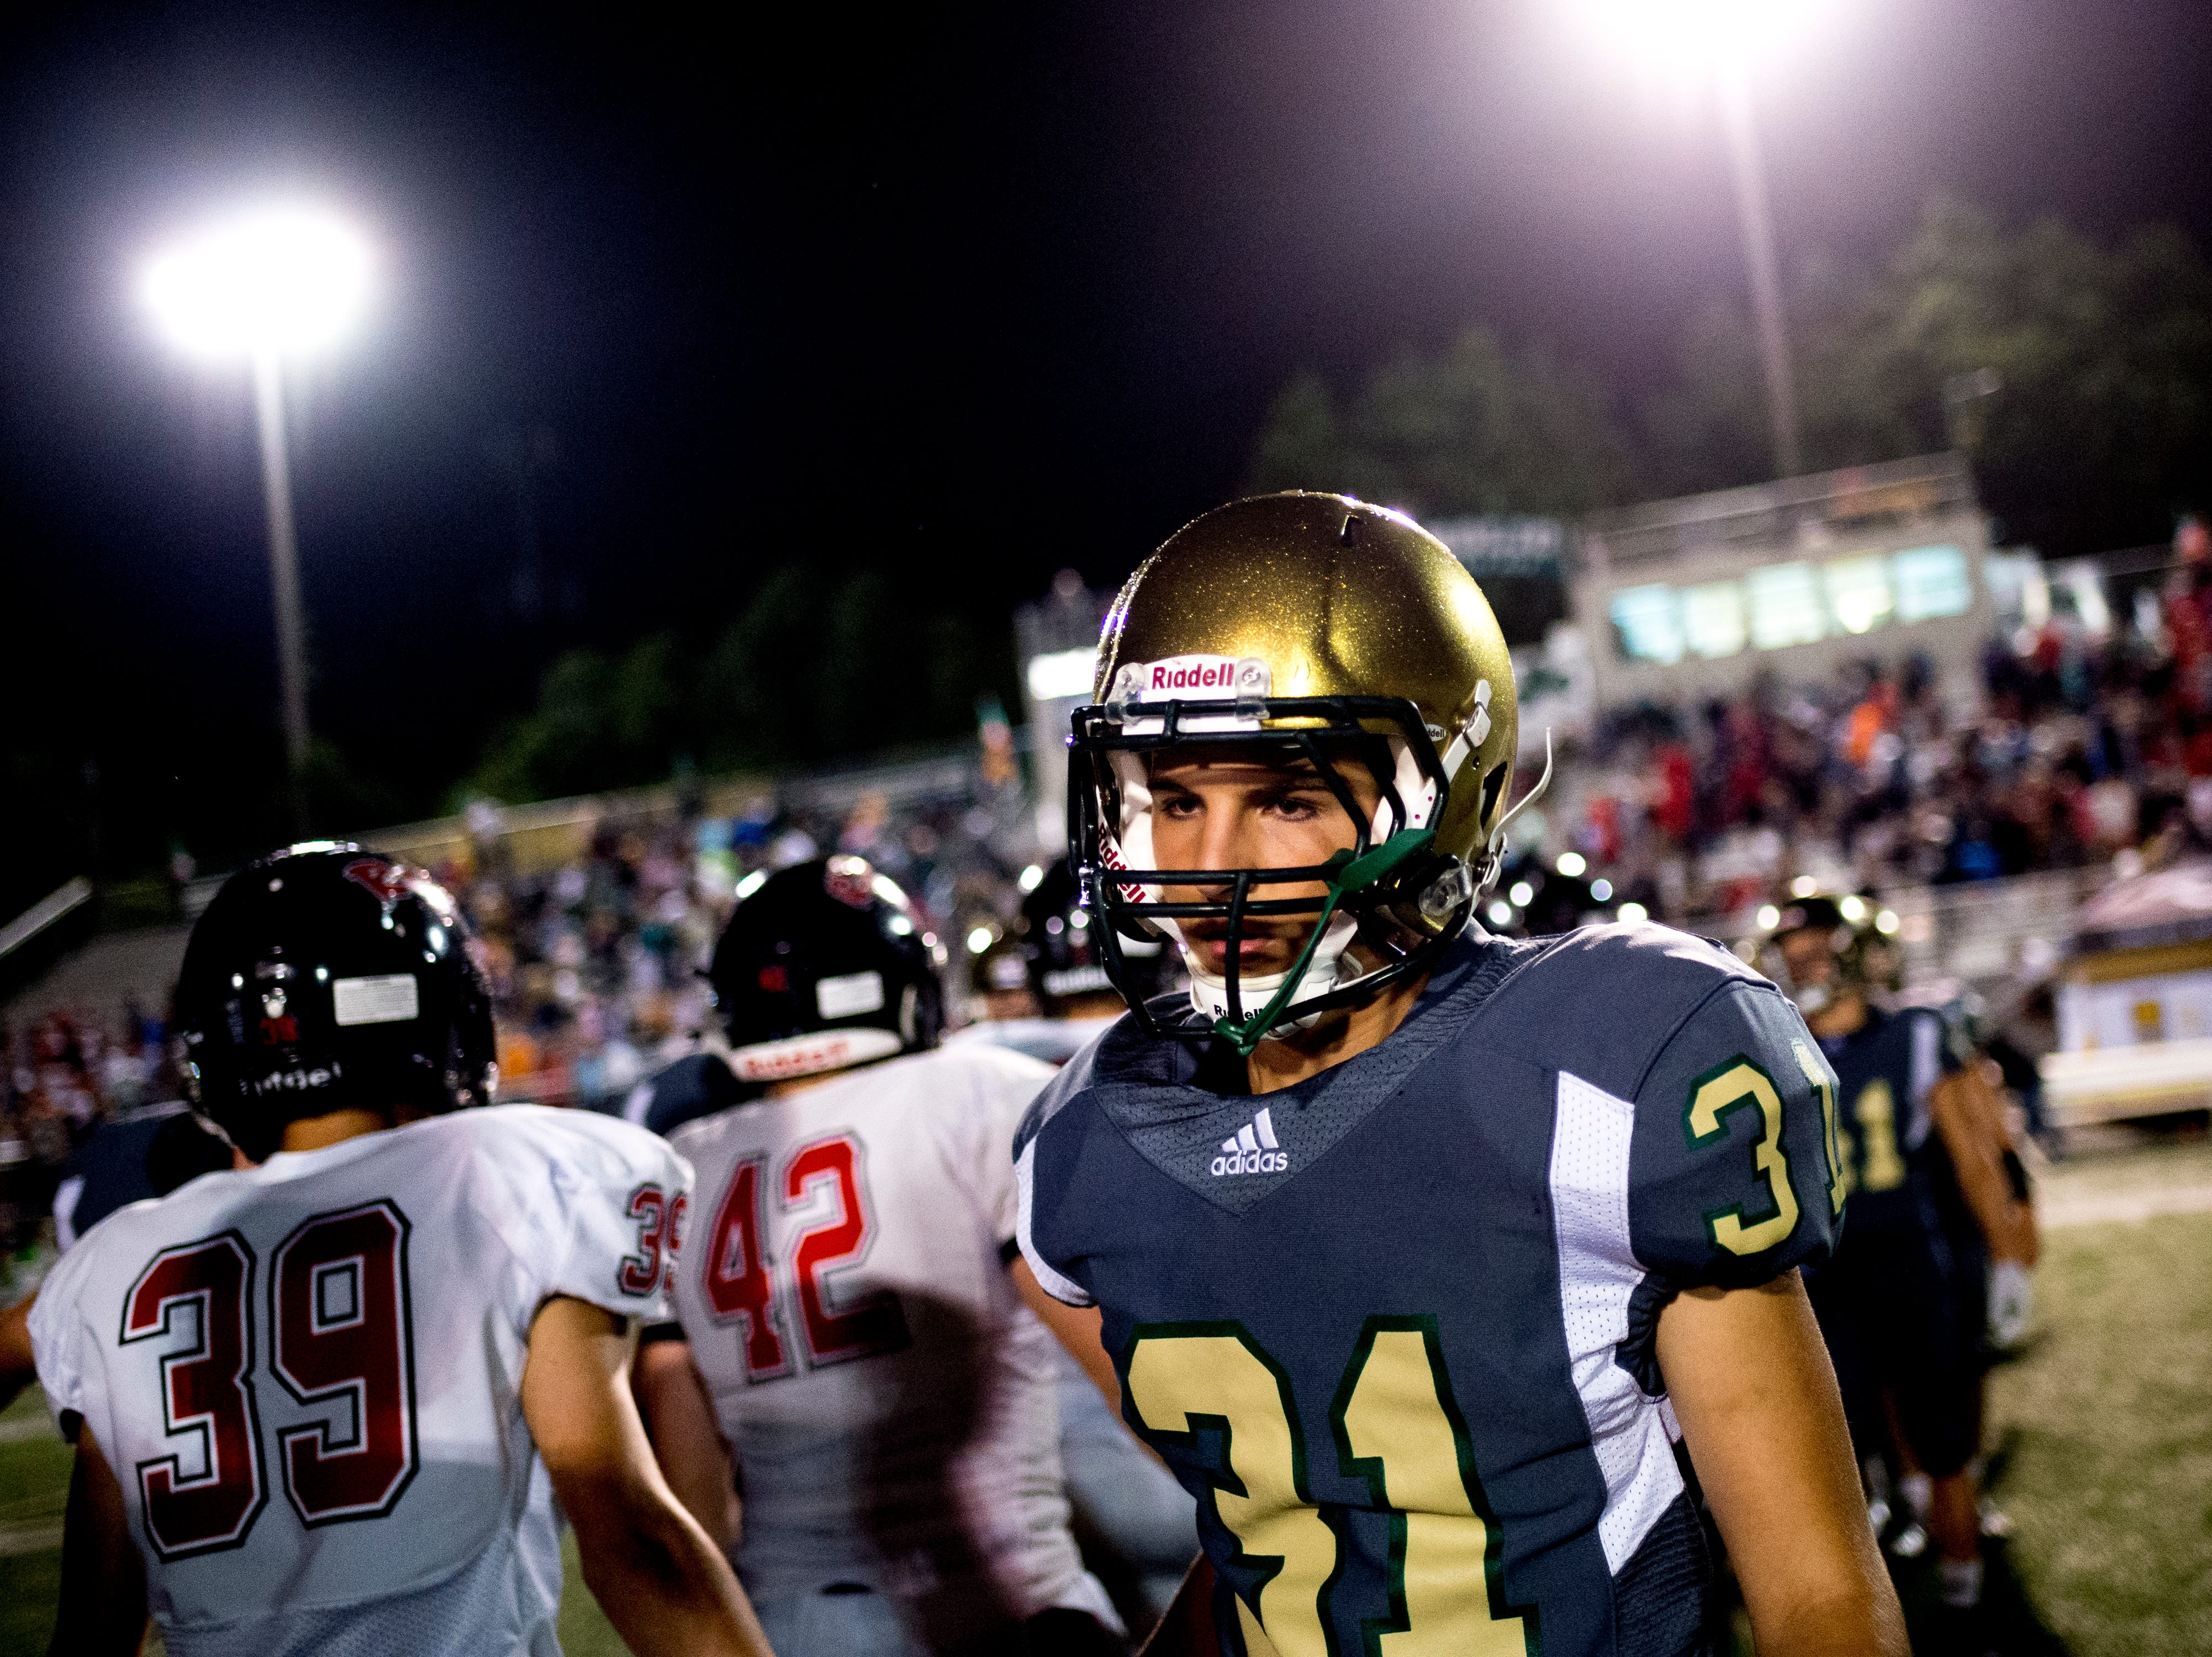 Catholic's Joseph Iverson (31) after losing to Maryville during a football game between Maryville and Catholic at Catholic High School in Knoxville, Tennessee on Friday, August 17, 2018.